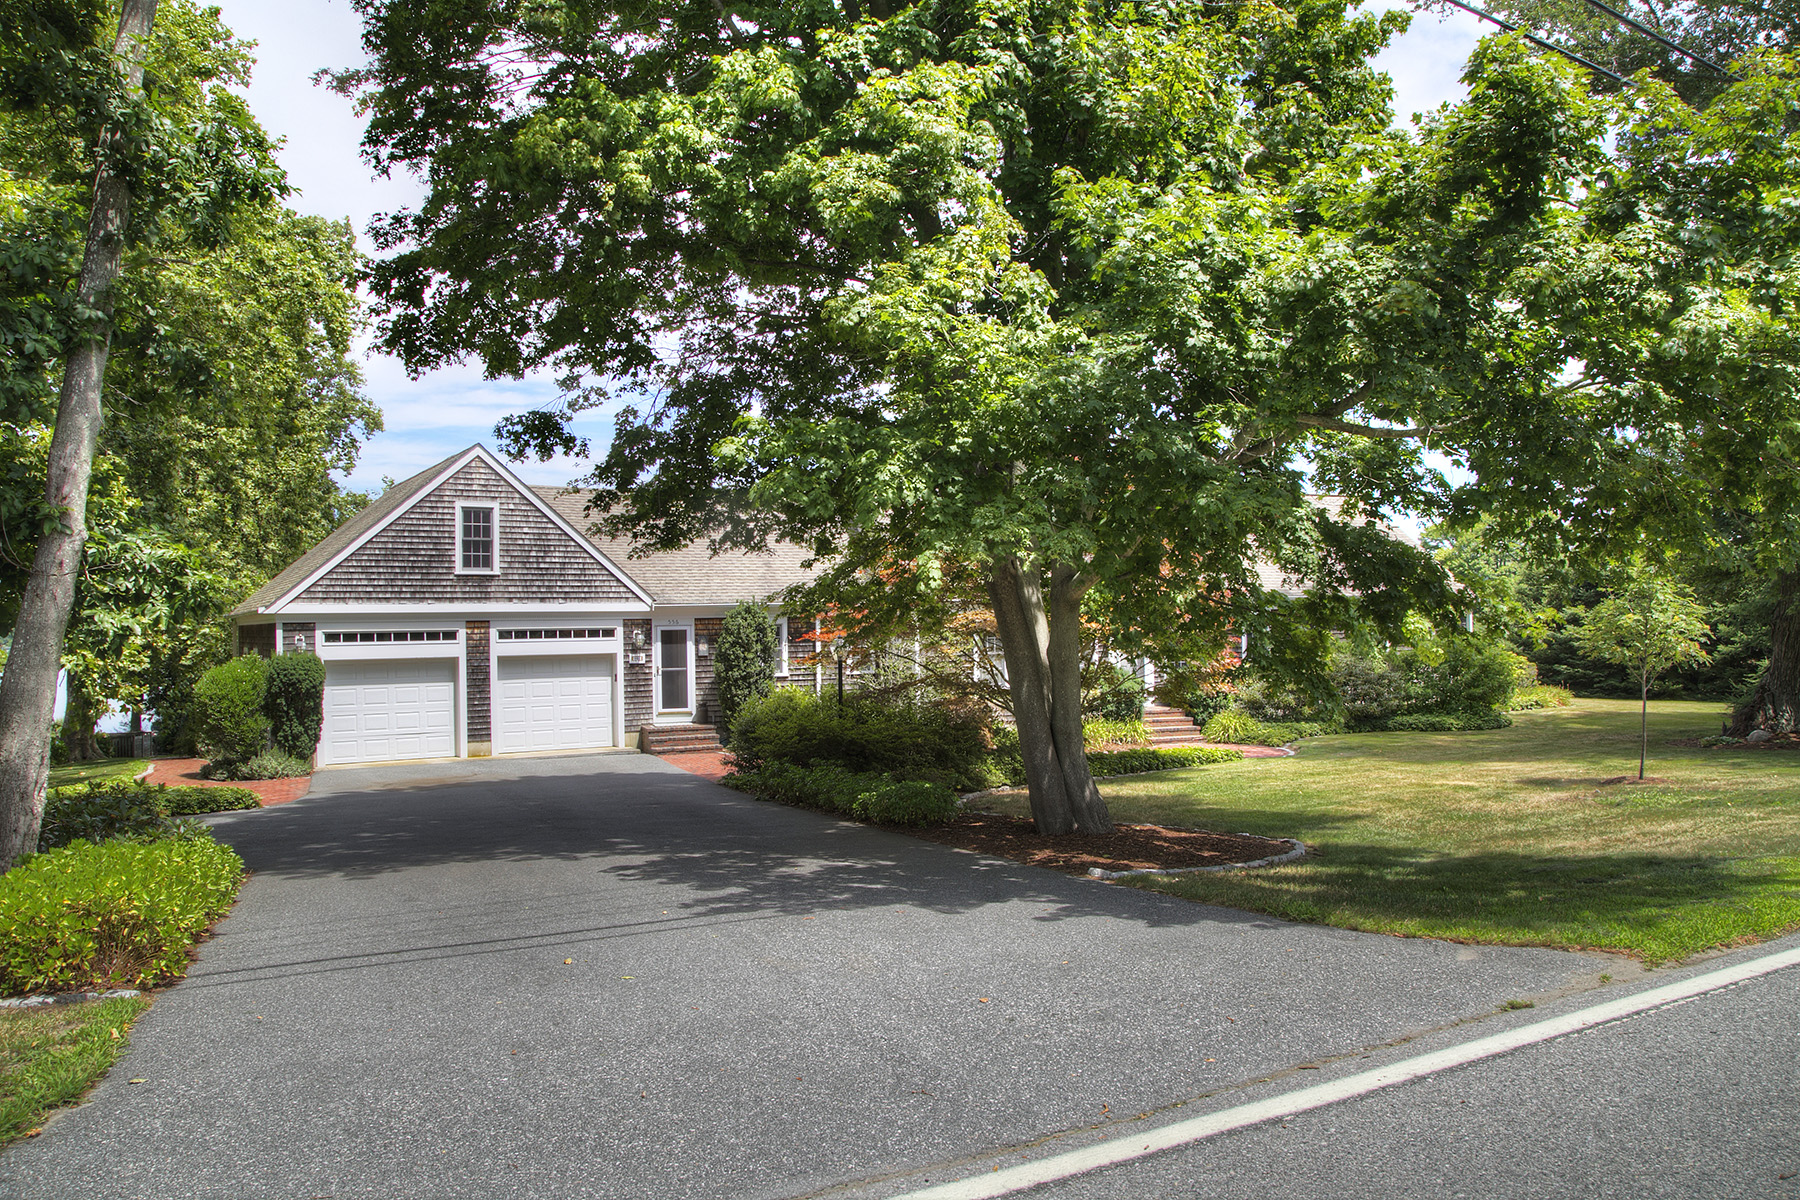 Additional photo for property listing at Nanaquaket Cape 556 Nanaquaket Road Tiverton, Rhode Island 02878 United States